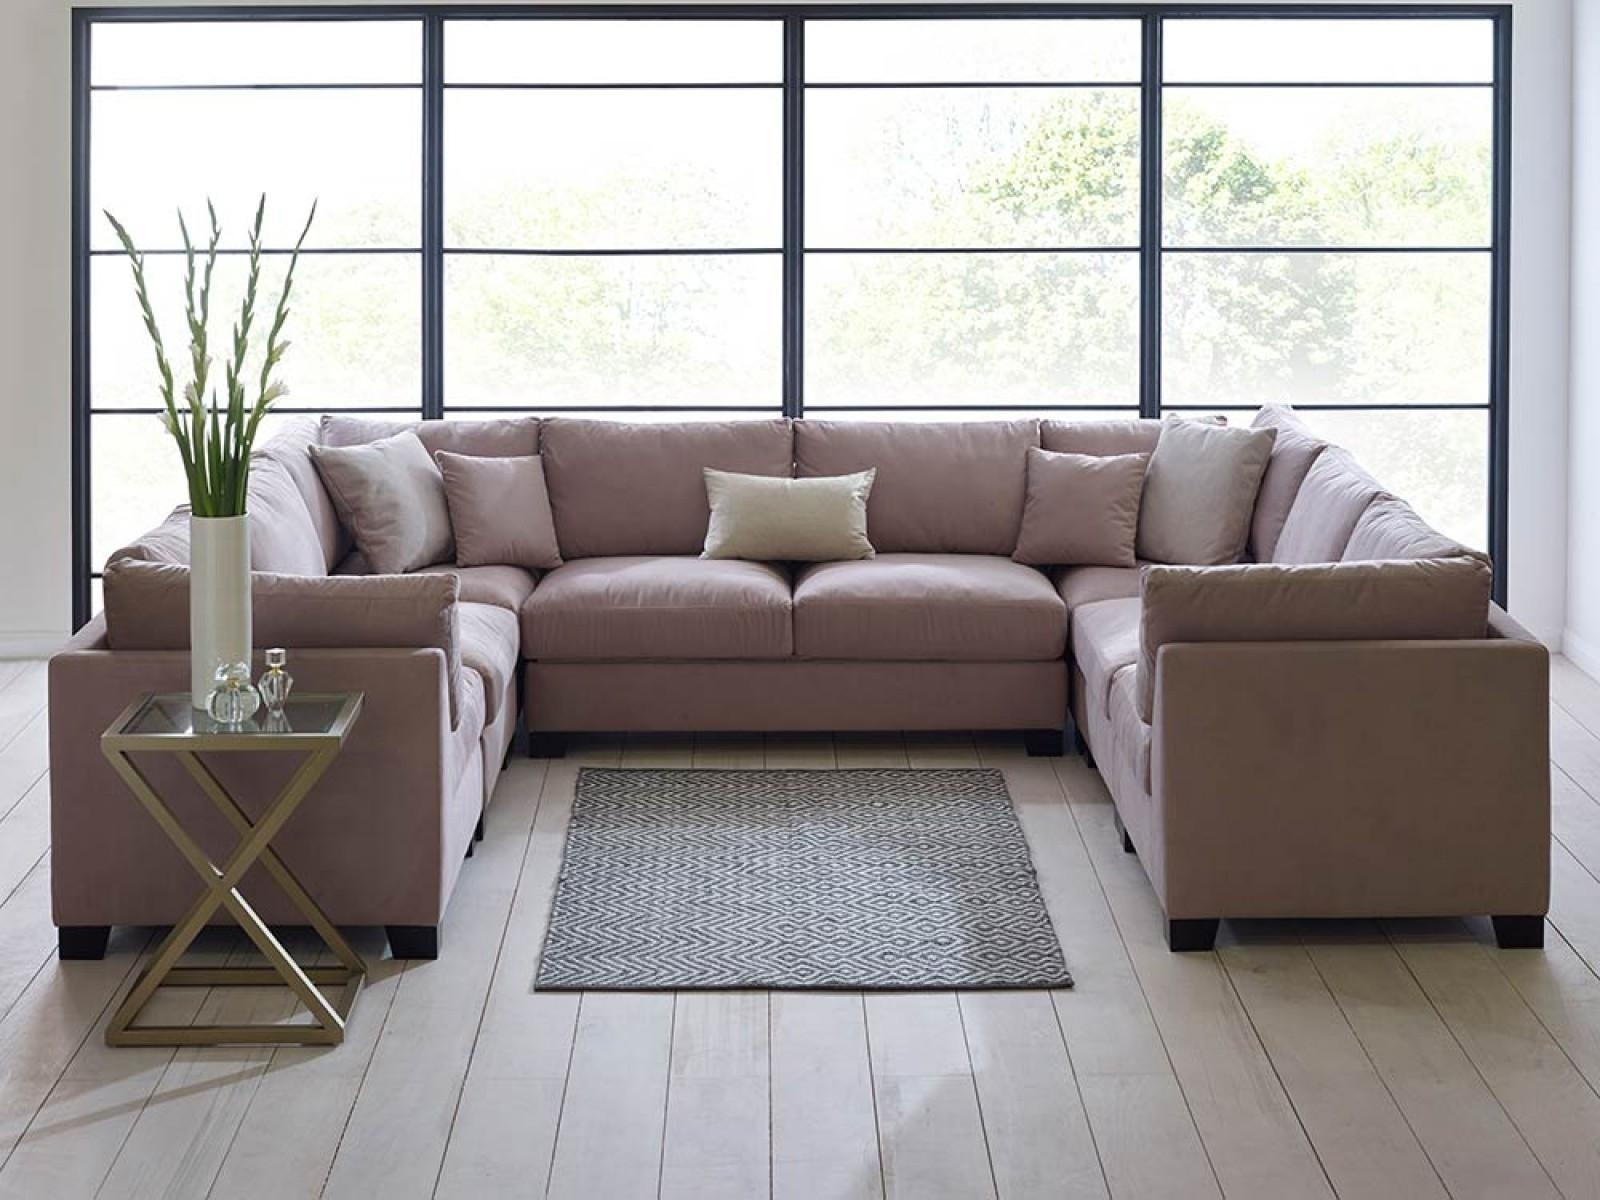 Furniture : Leather Sectional Couch Lovely U Shaped Sofa Google Throughout Blue U Shaped Sectionals (View 5 of 10)